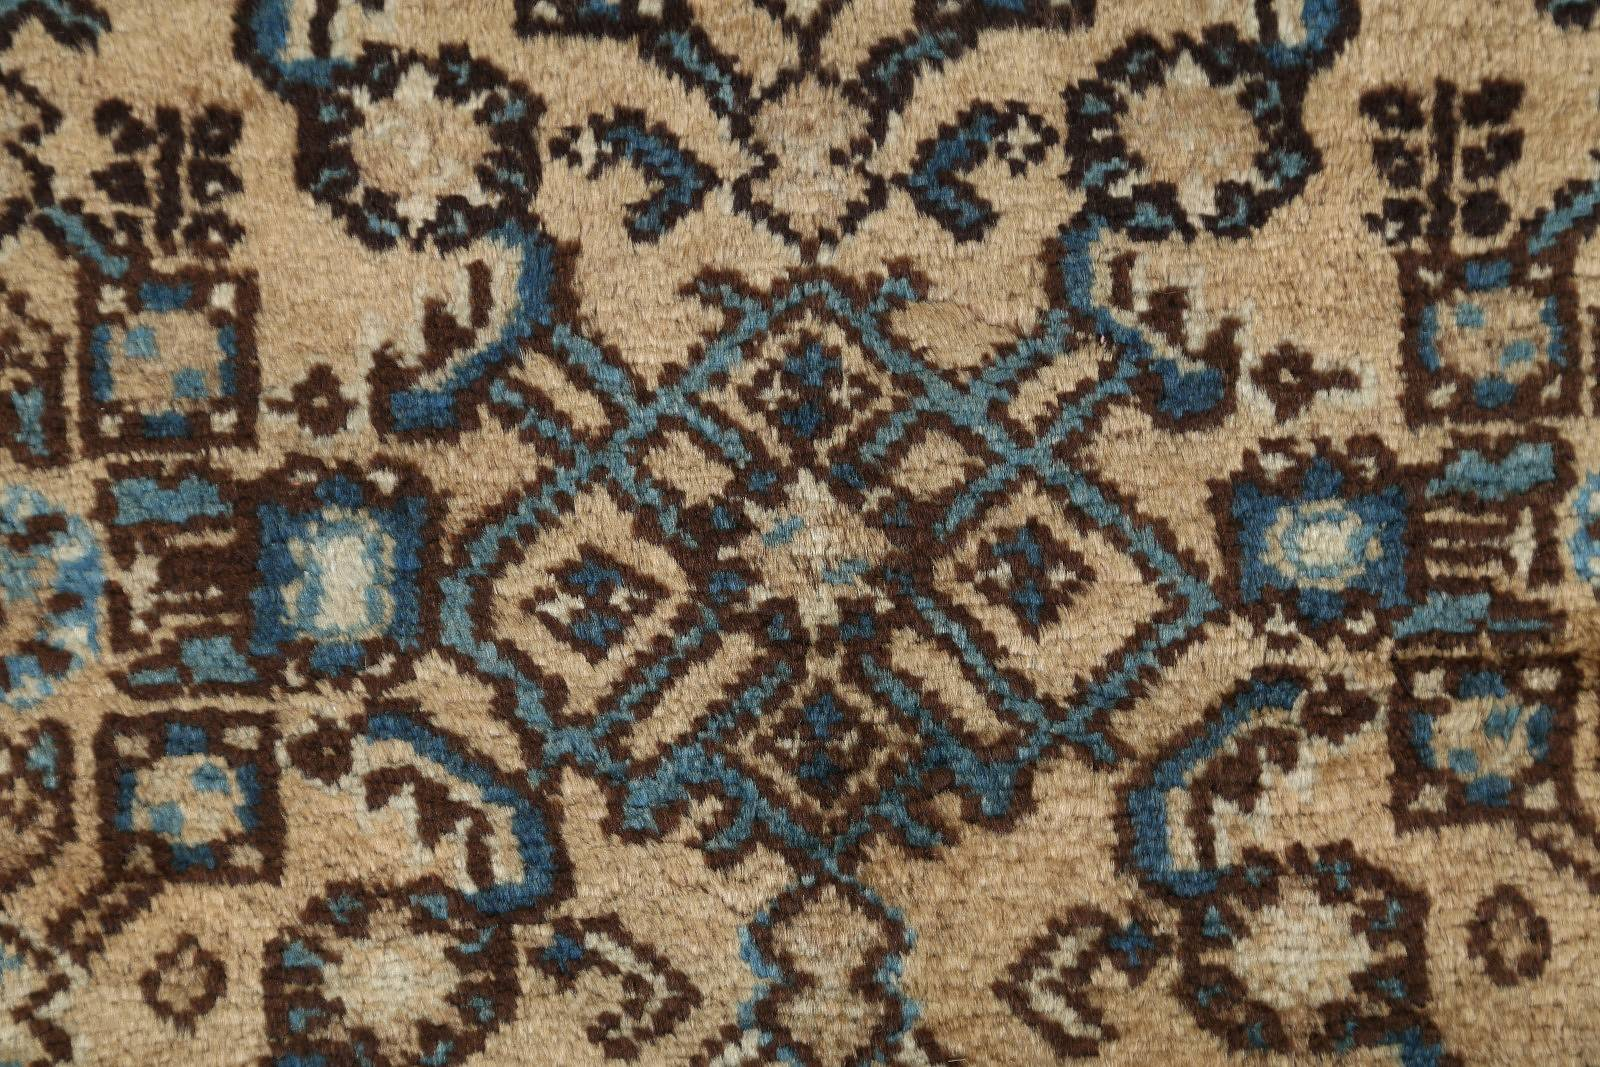 Floral Muted Color 3x13 Hamedan Persian Rug Runner